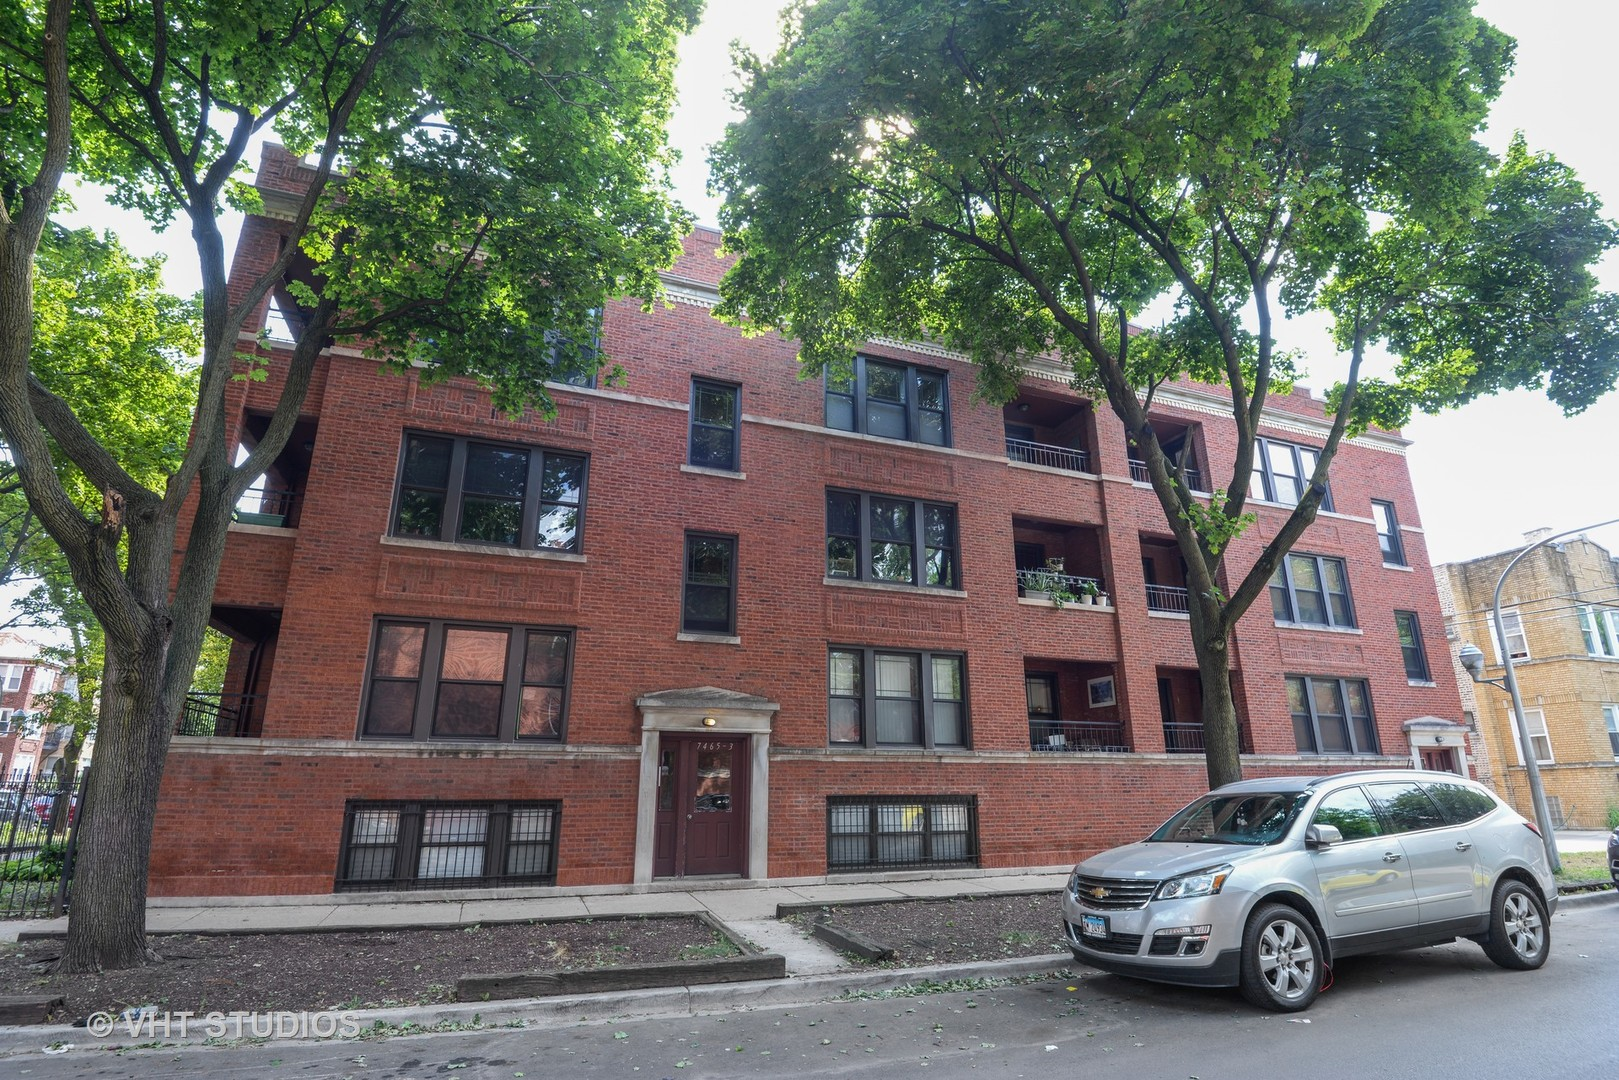 7465 North Seeley Avenue, #A, Chicago, IL 60645